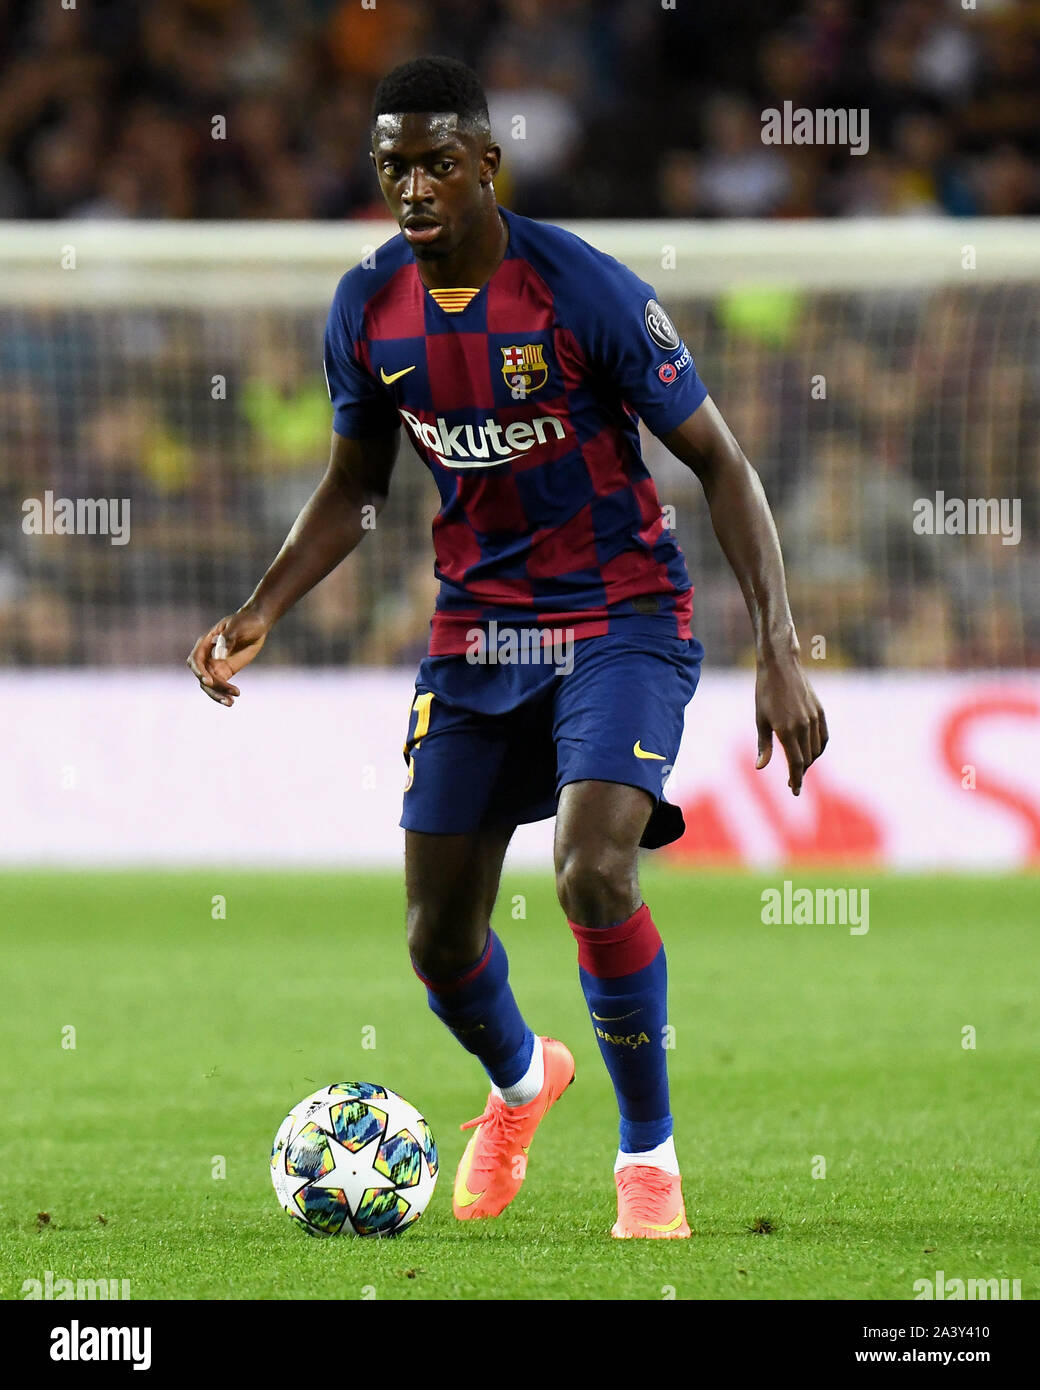 Barcelona Spain 10th Oct 2019 Barcelona 02 10 2019 Uefa Champions League 2019 2020 Date 2 Barcelona Inter De Milan Ousmane Dembele Of Fc Barcelona During The Match Fc Barcelona V Juventus Fc